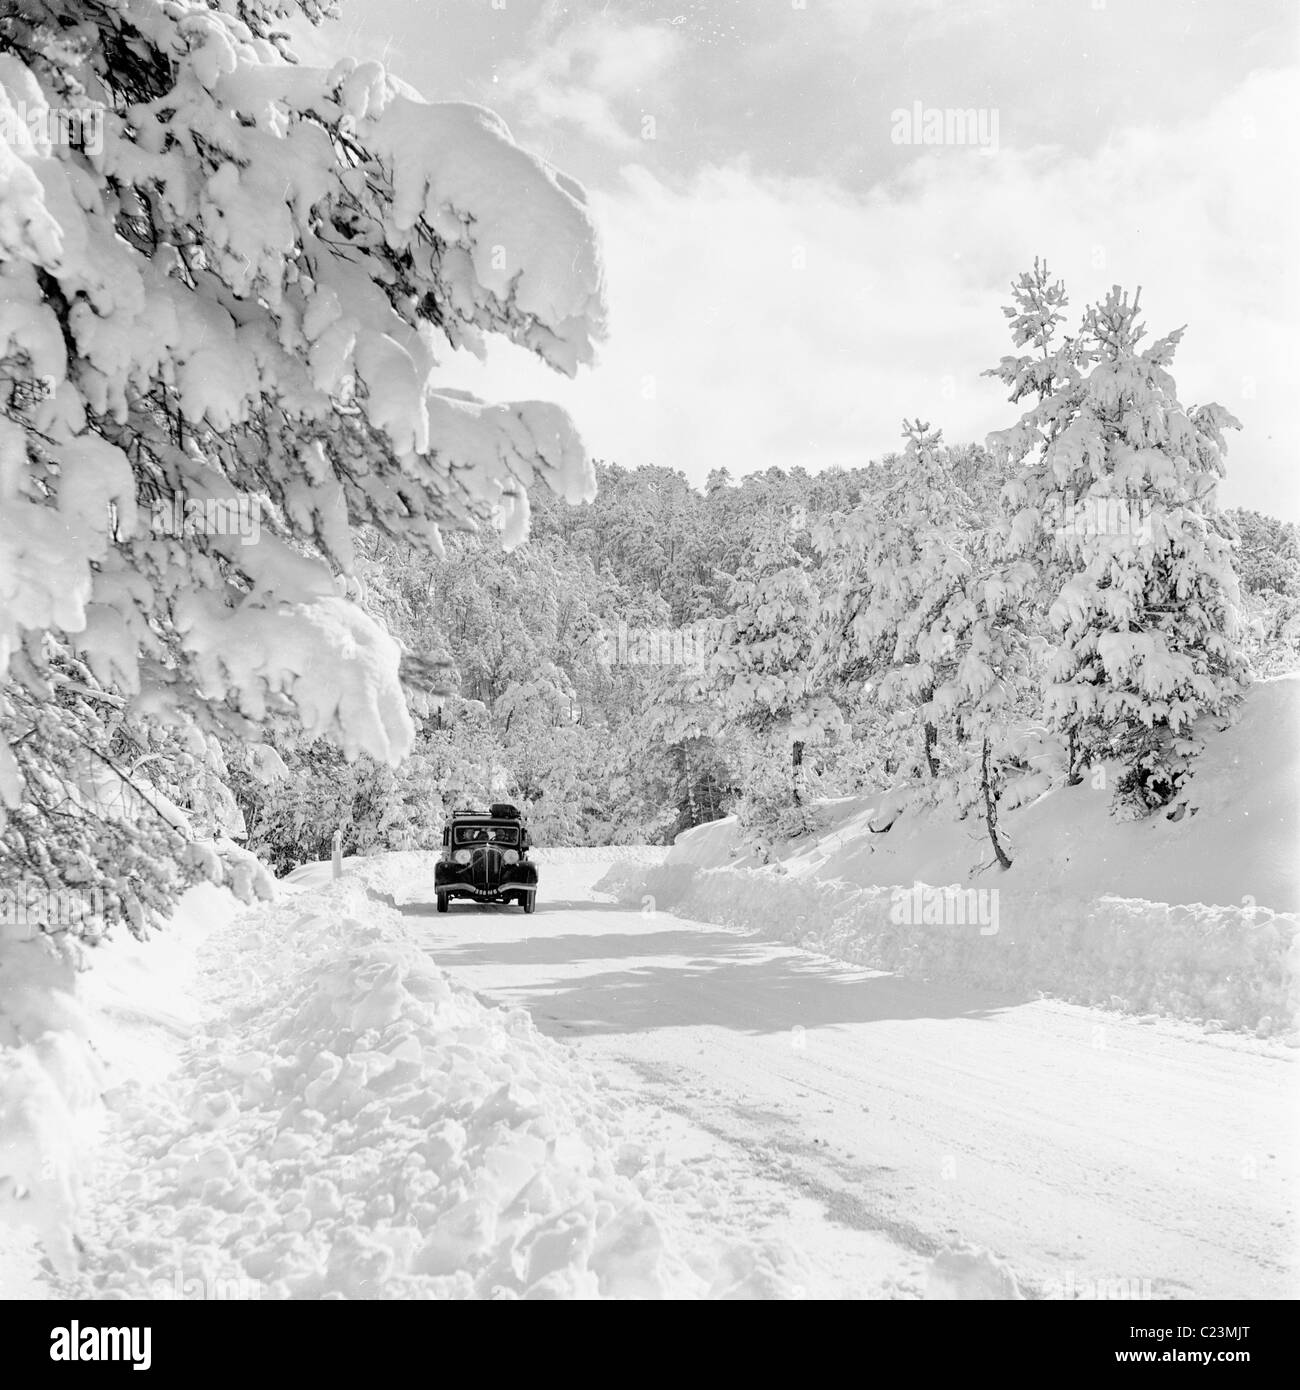 1950, France.  Car travels on a snow covered road in Provence in this historical photograph by J Allan Cash. - Stock Image